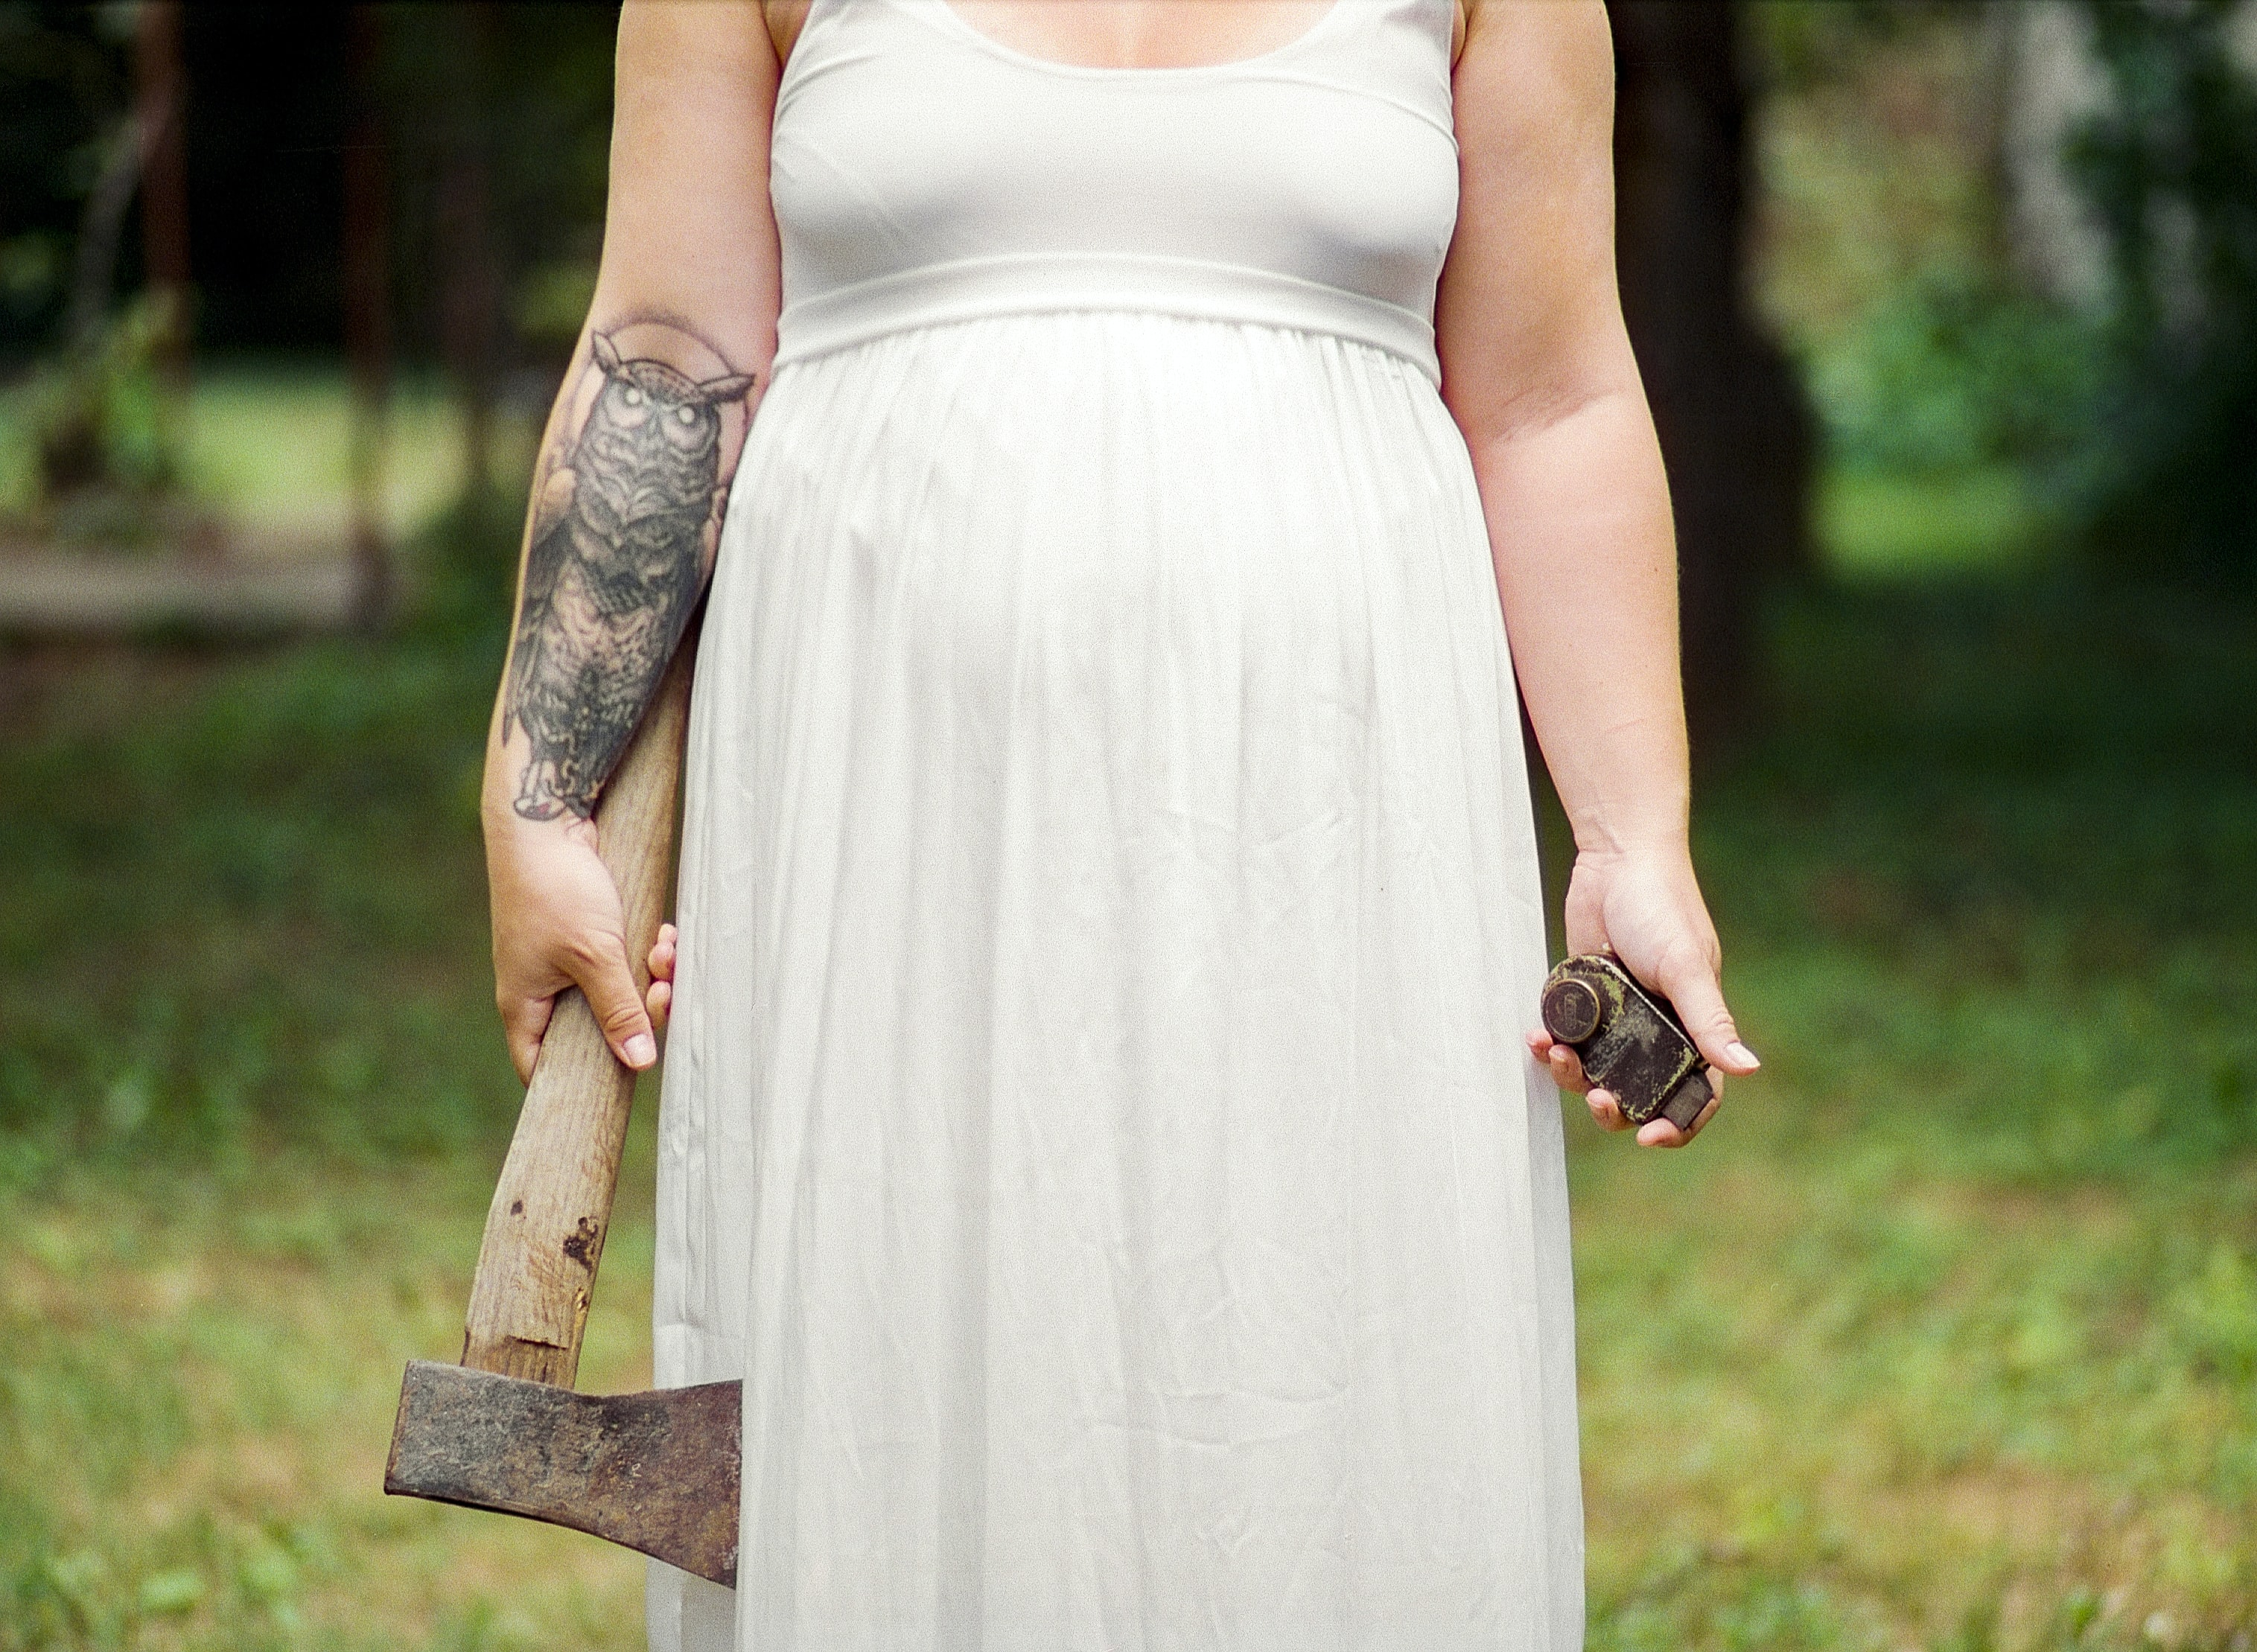 woman in white dress holding axe during daytime